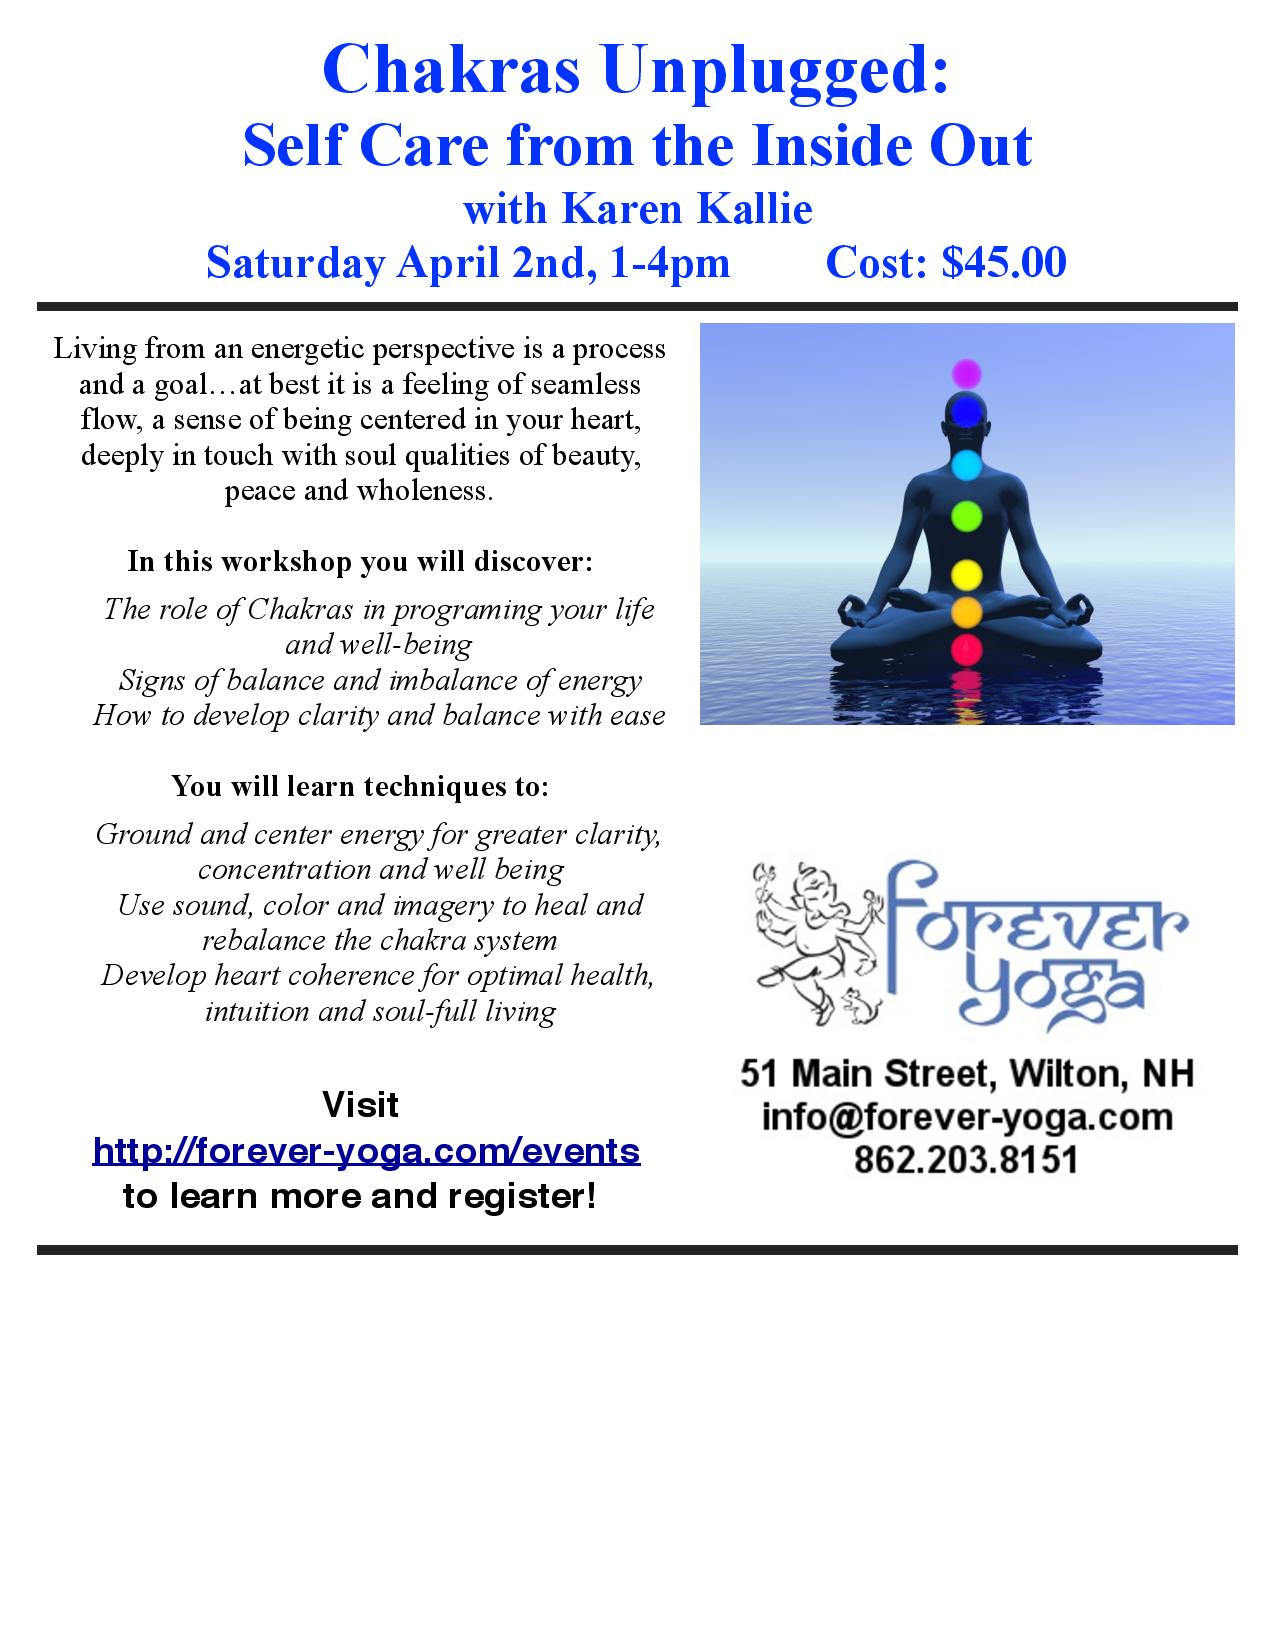 Chakras Unplugged Workshop April 2, 2016 in Wilton, NH